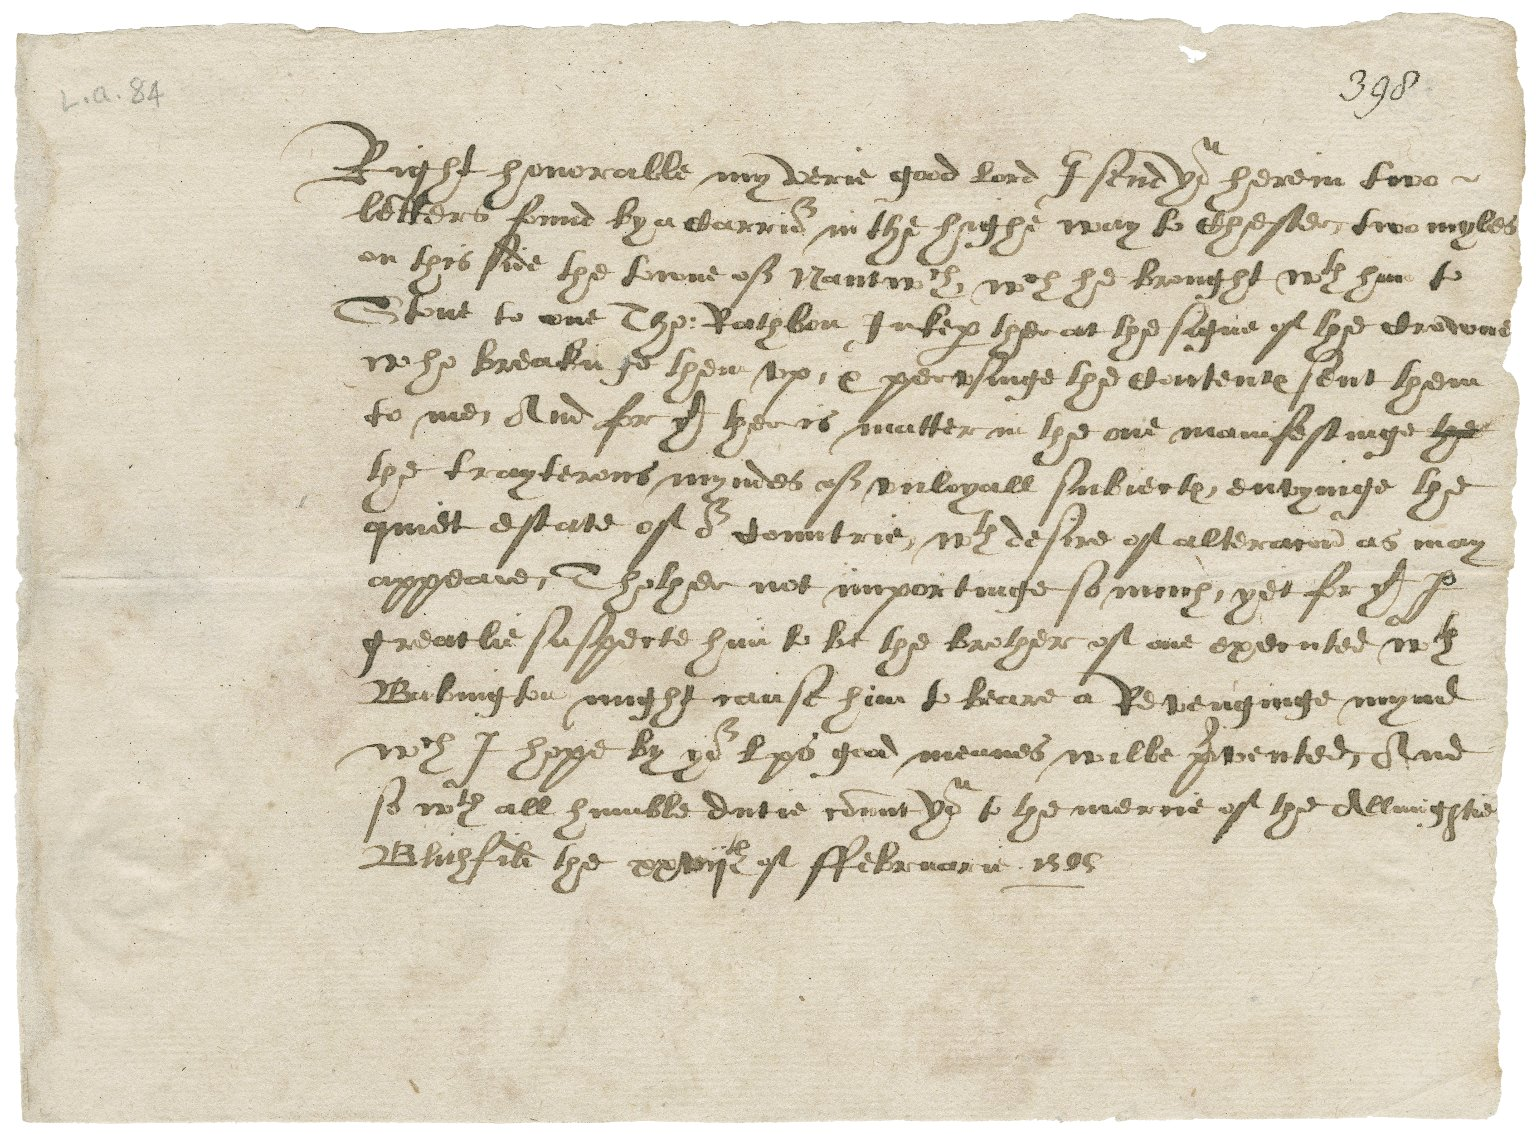 Letter from Richard Bagot to Lord Burghley